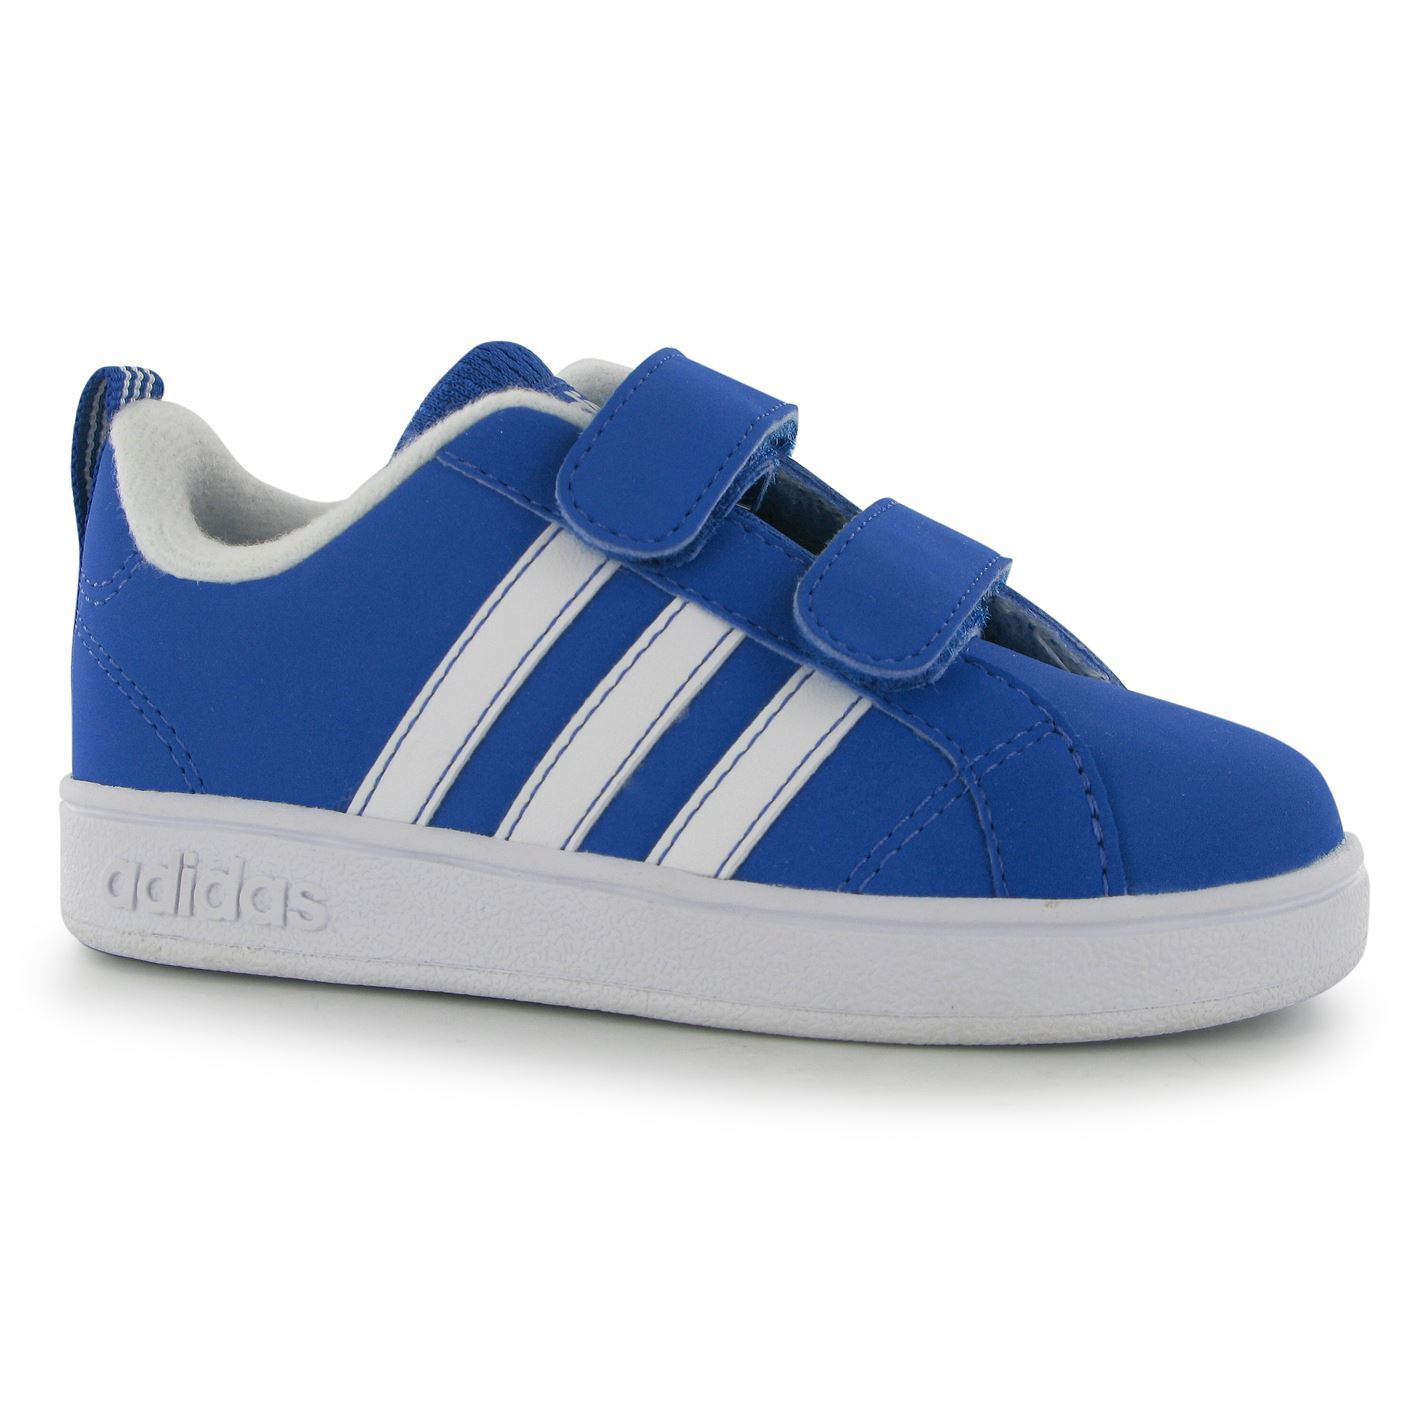 Adidas Training Shoes Loop